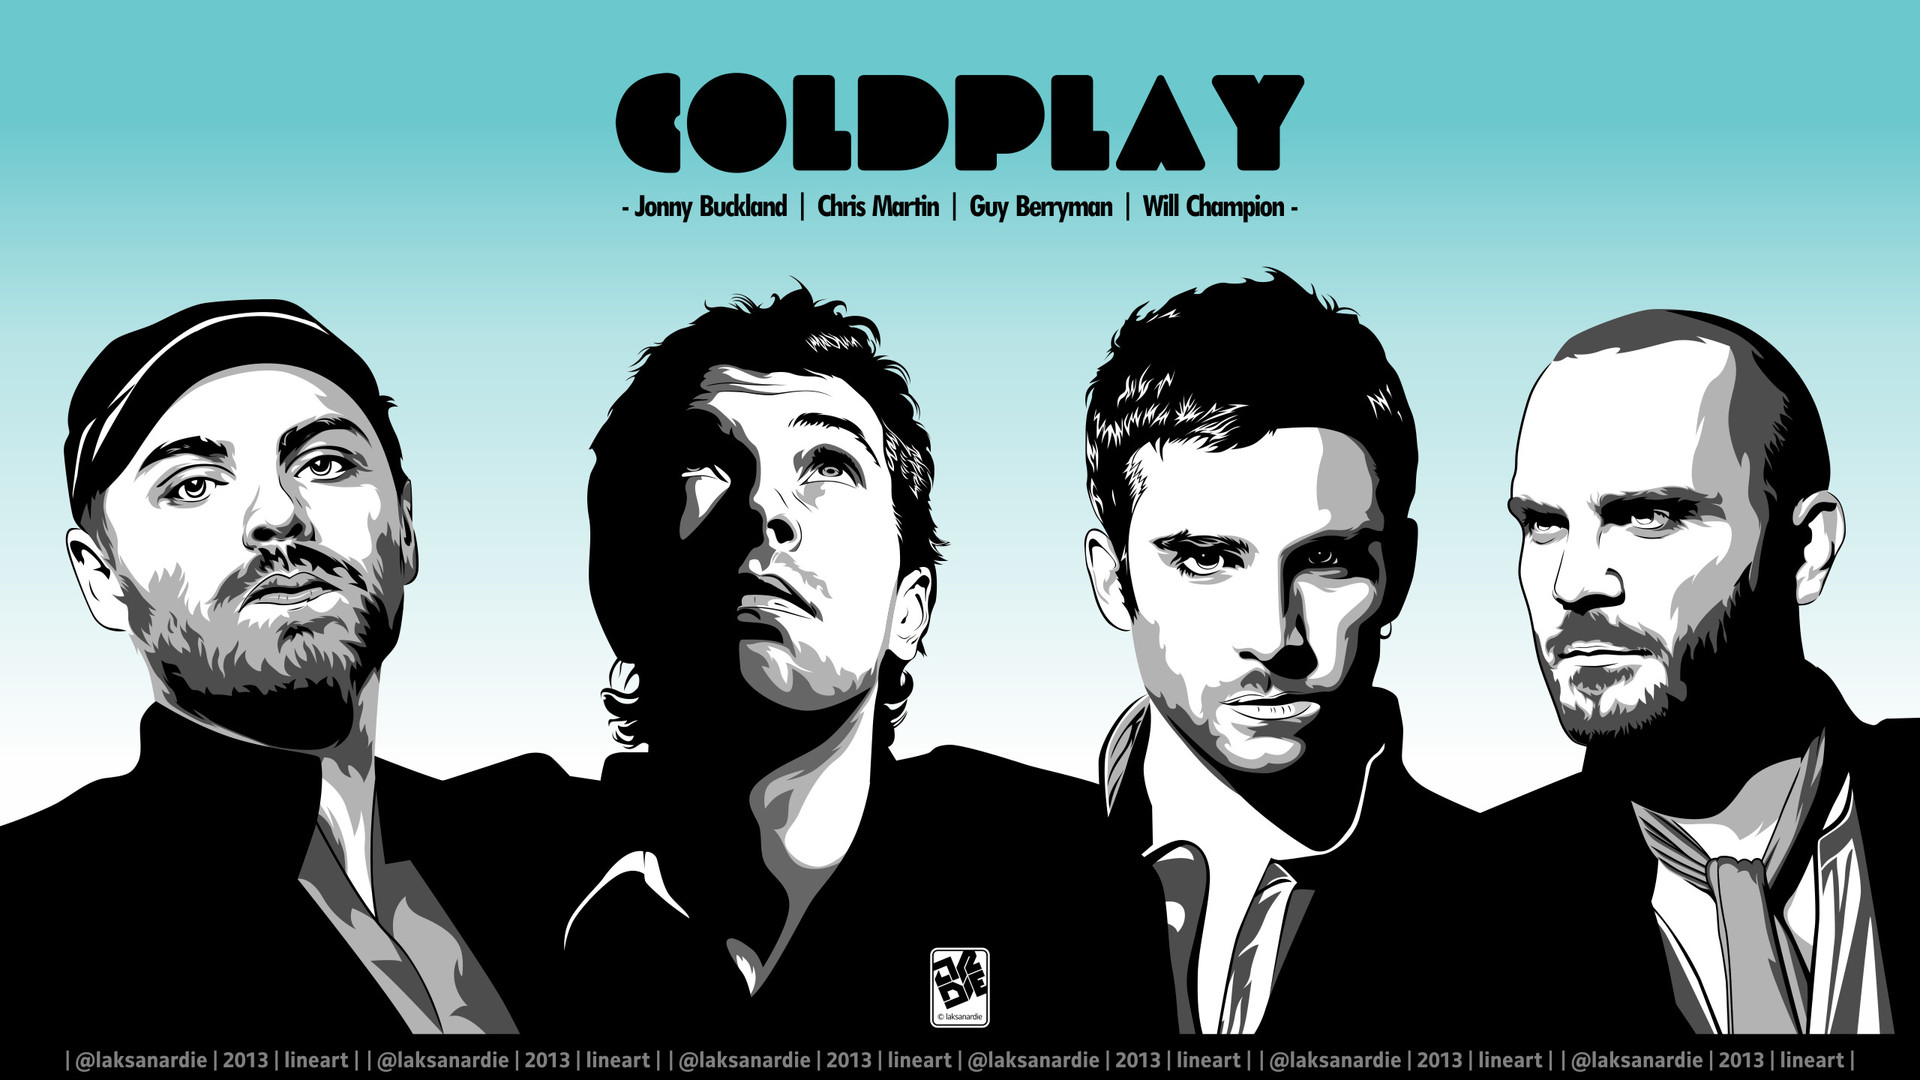 1920x1080 Coldplay Wallpapers Images Photos Pictures Backgrounds